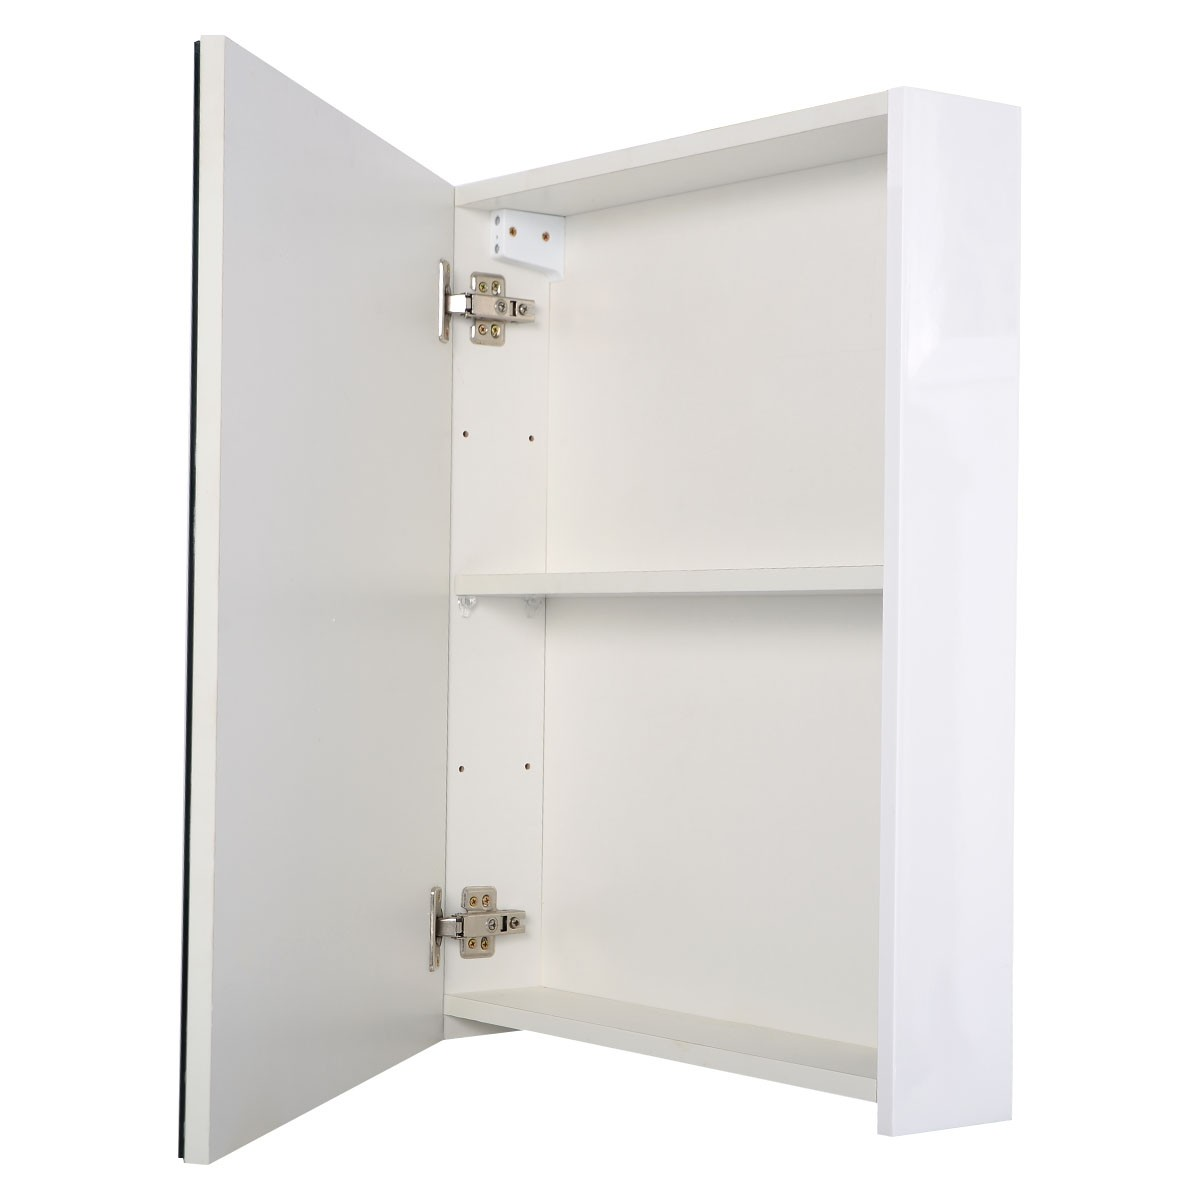 36 20 wide wall mount mirrored bathroom medicine cabinet - Bathroom storage mirrored cabinet ...